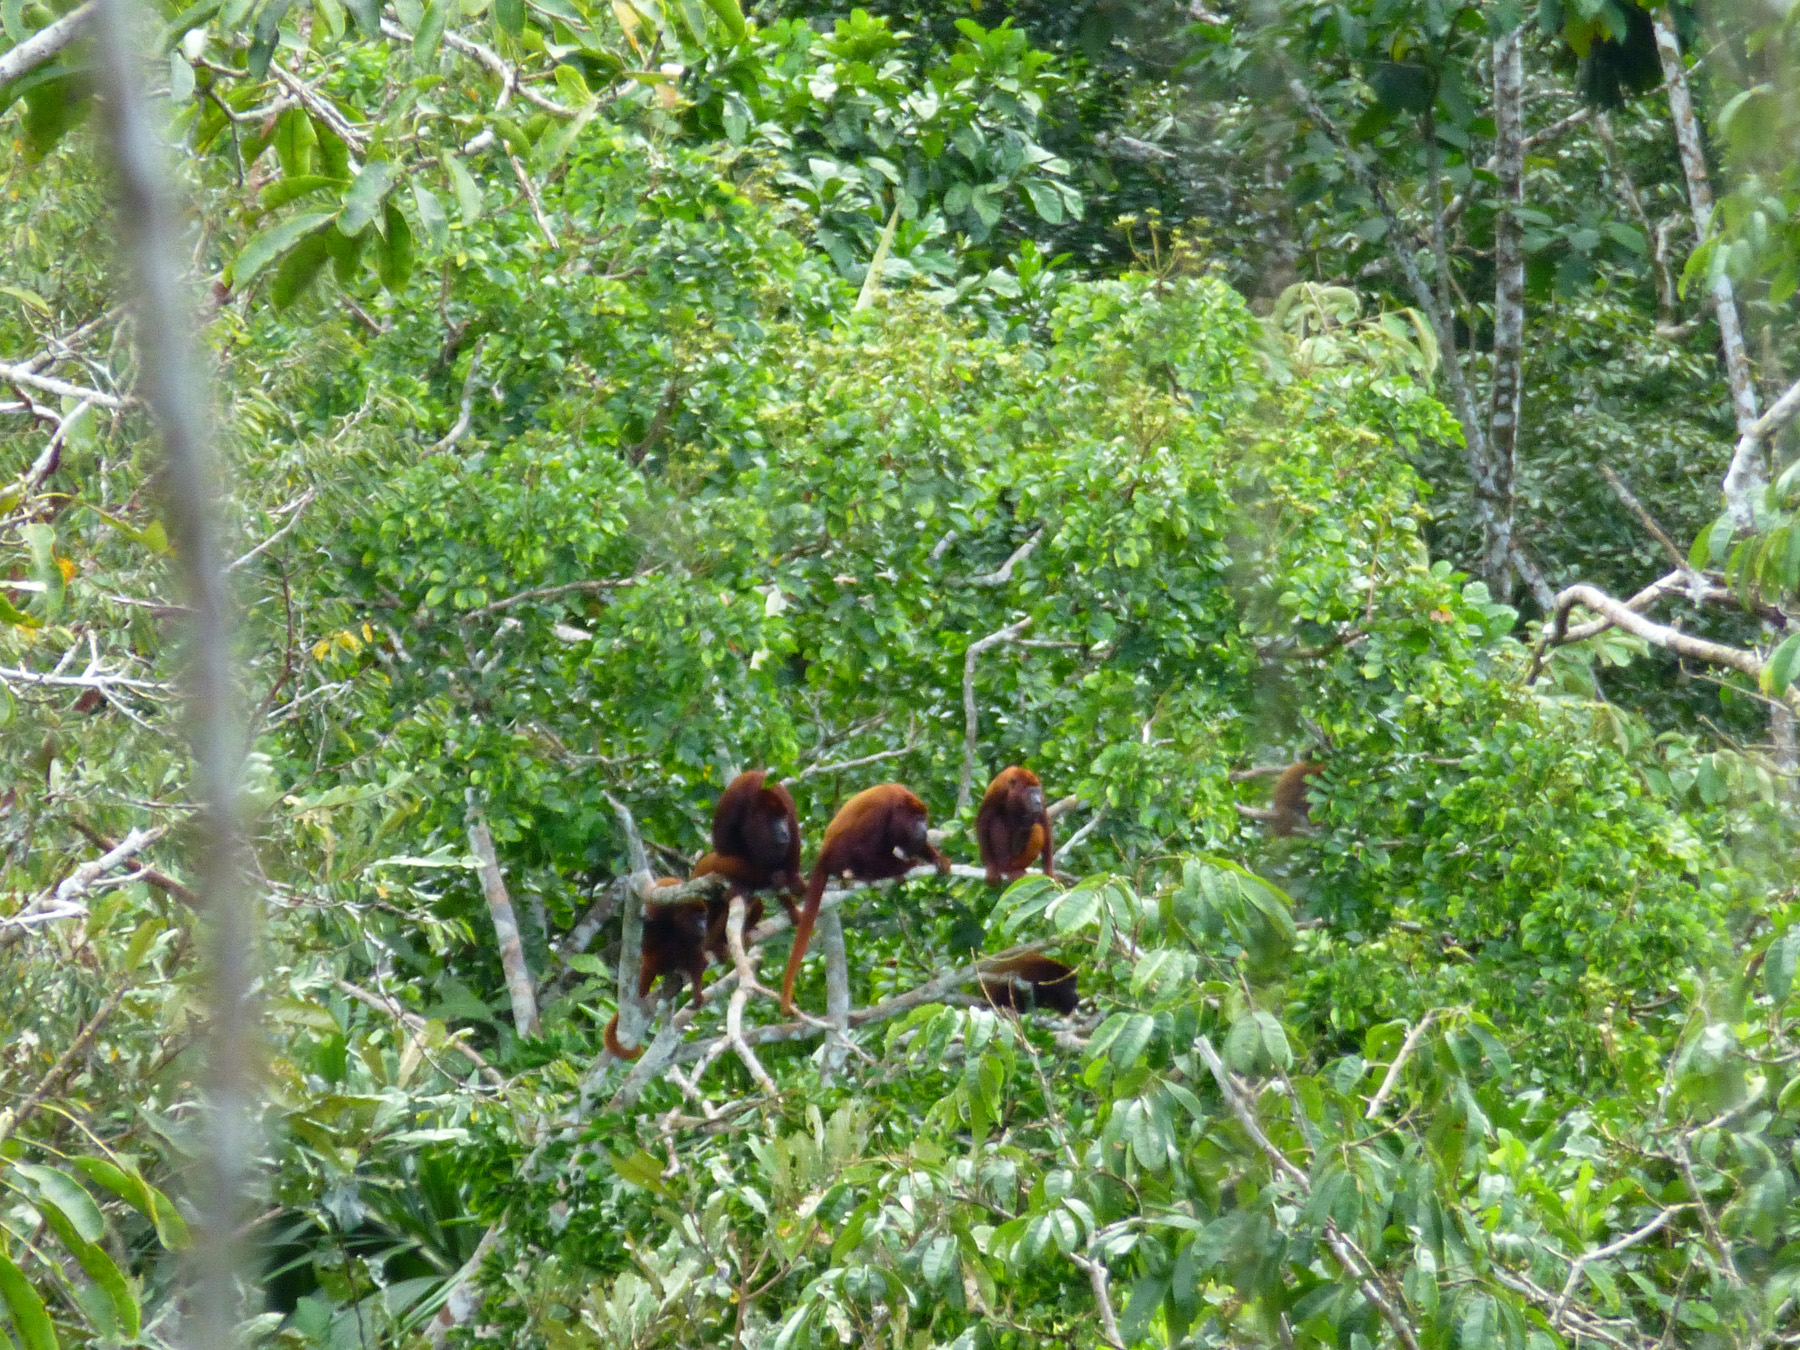 These red howler monkeys were roaring like a thunder storm. I'm so glad they stepped into sight, or we would've only heard them.